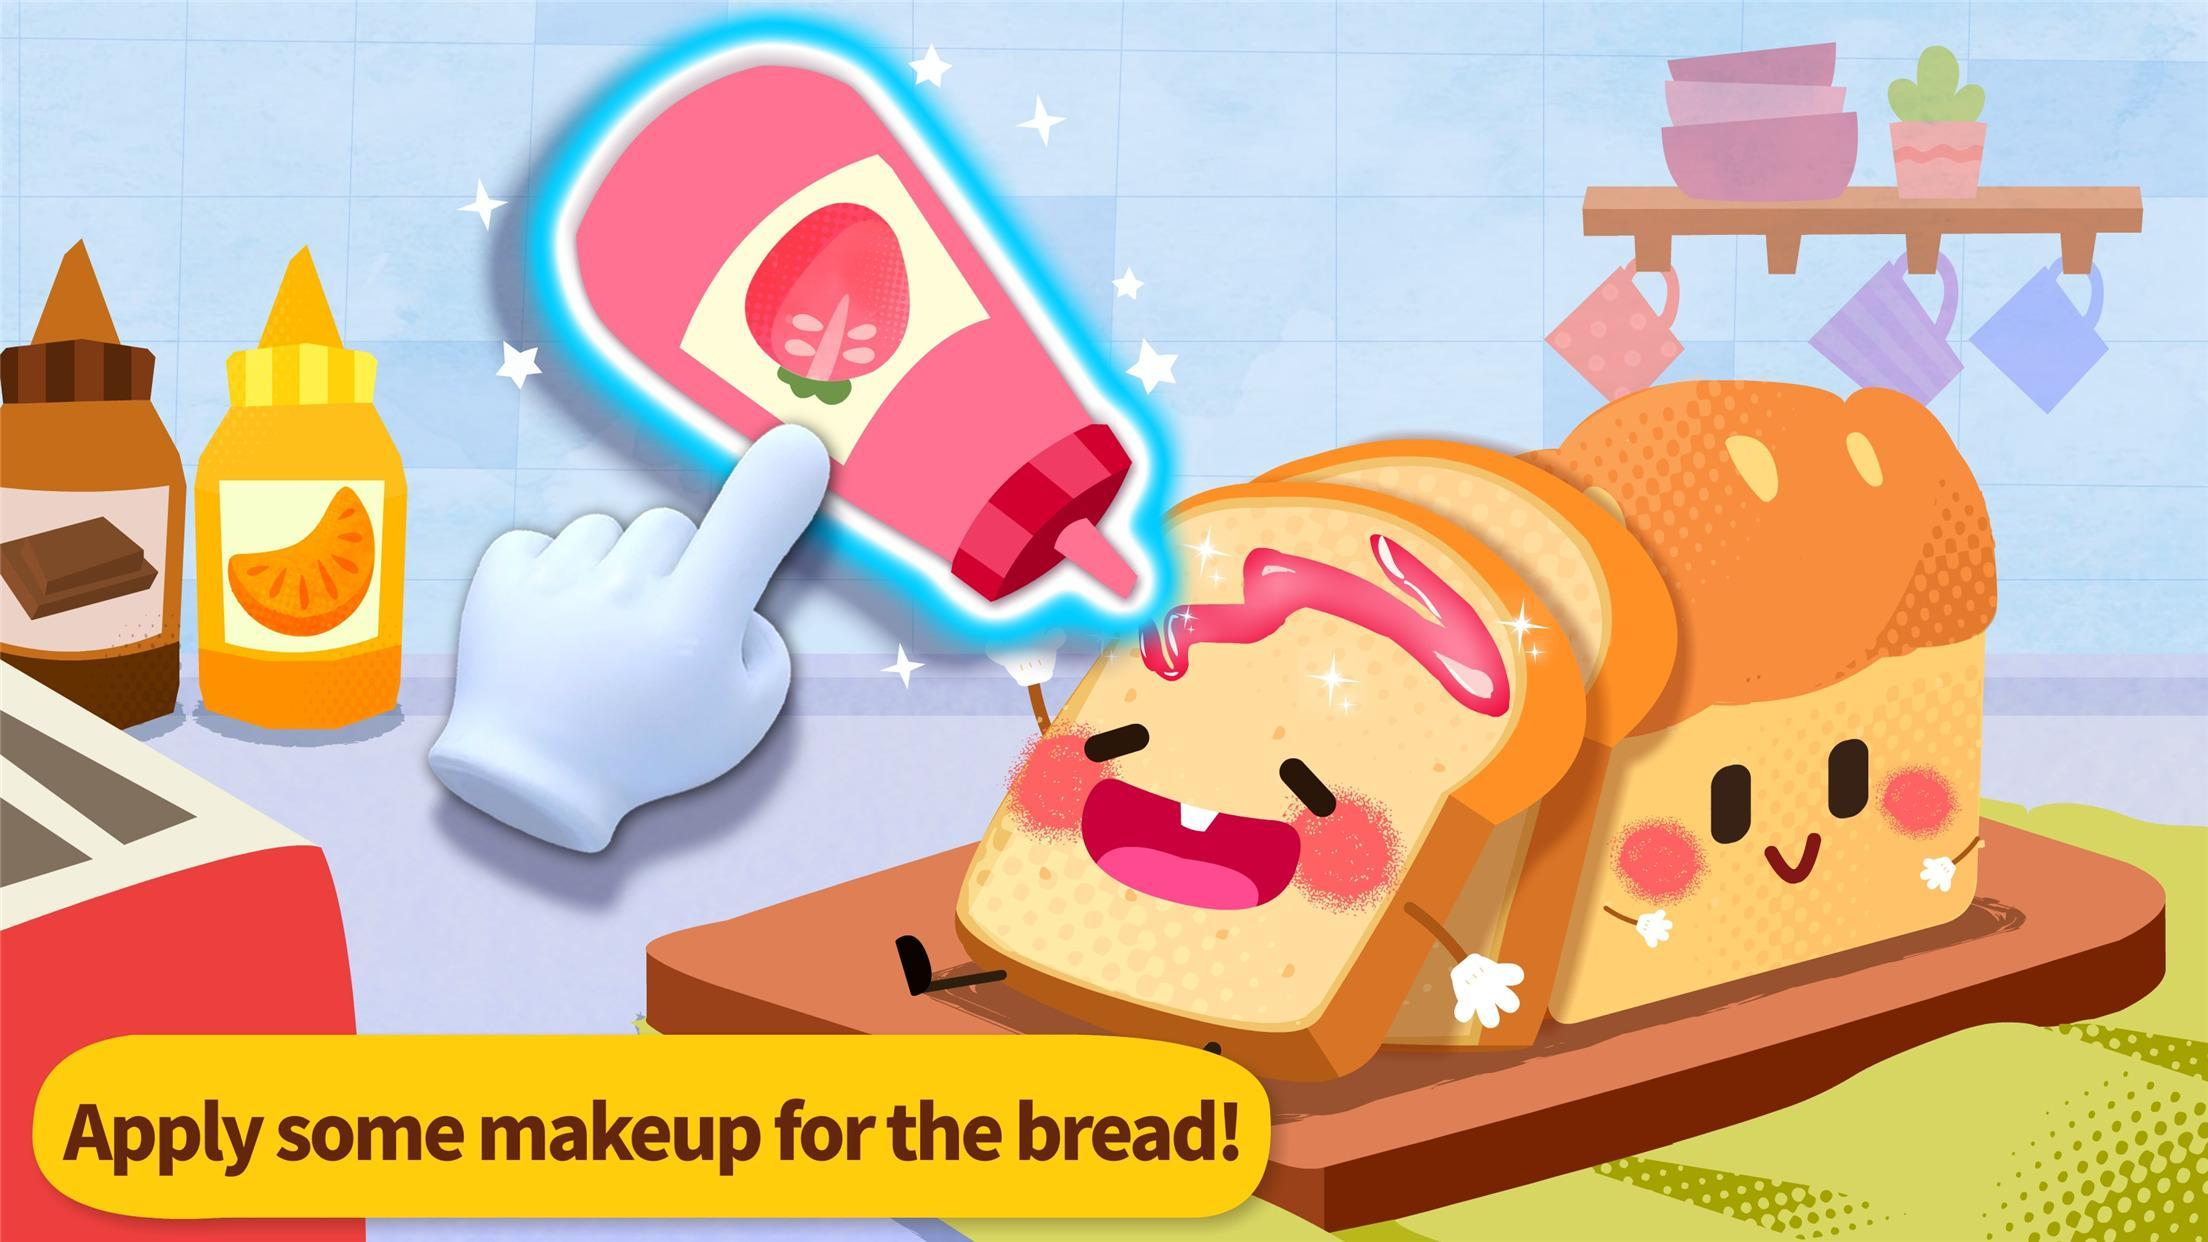 Baby Panda's Food Party Dress Up download app for Android - eenternet